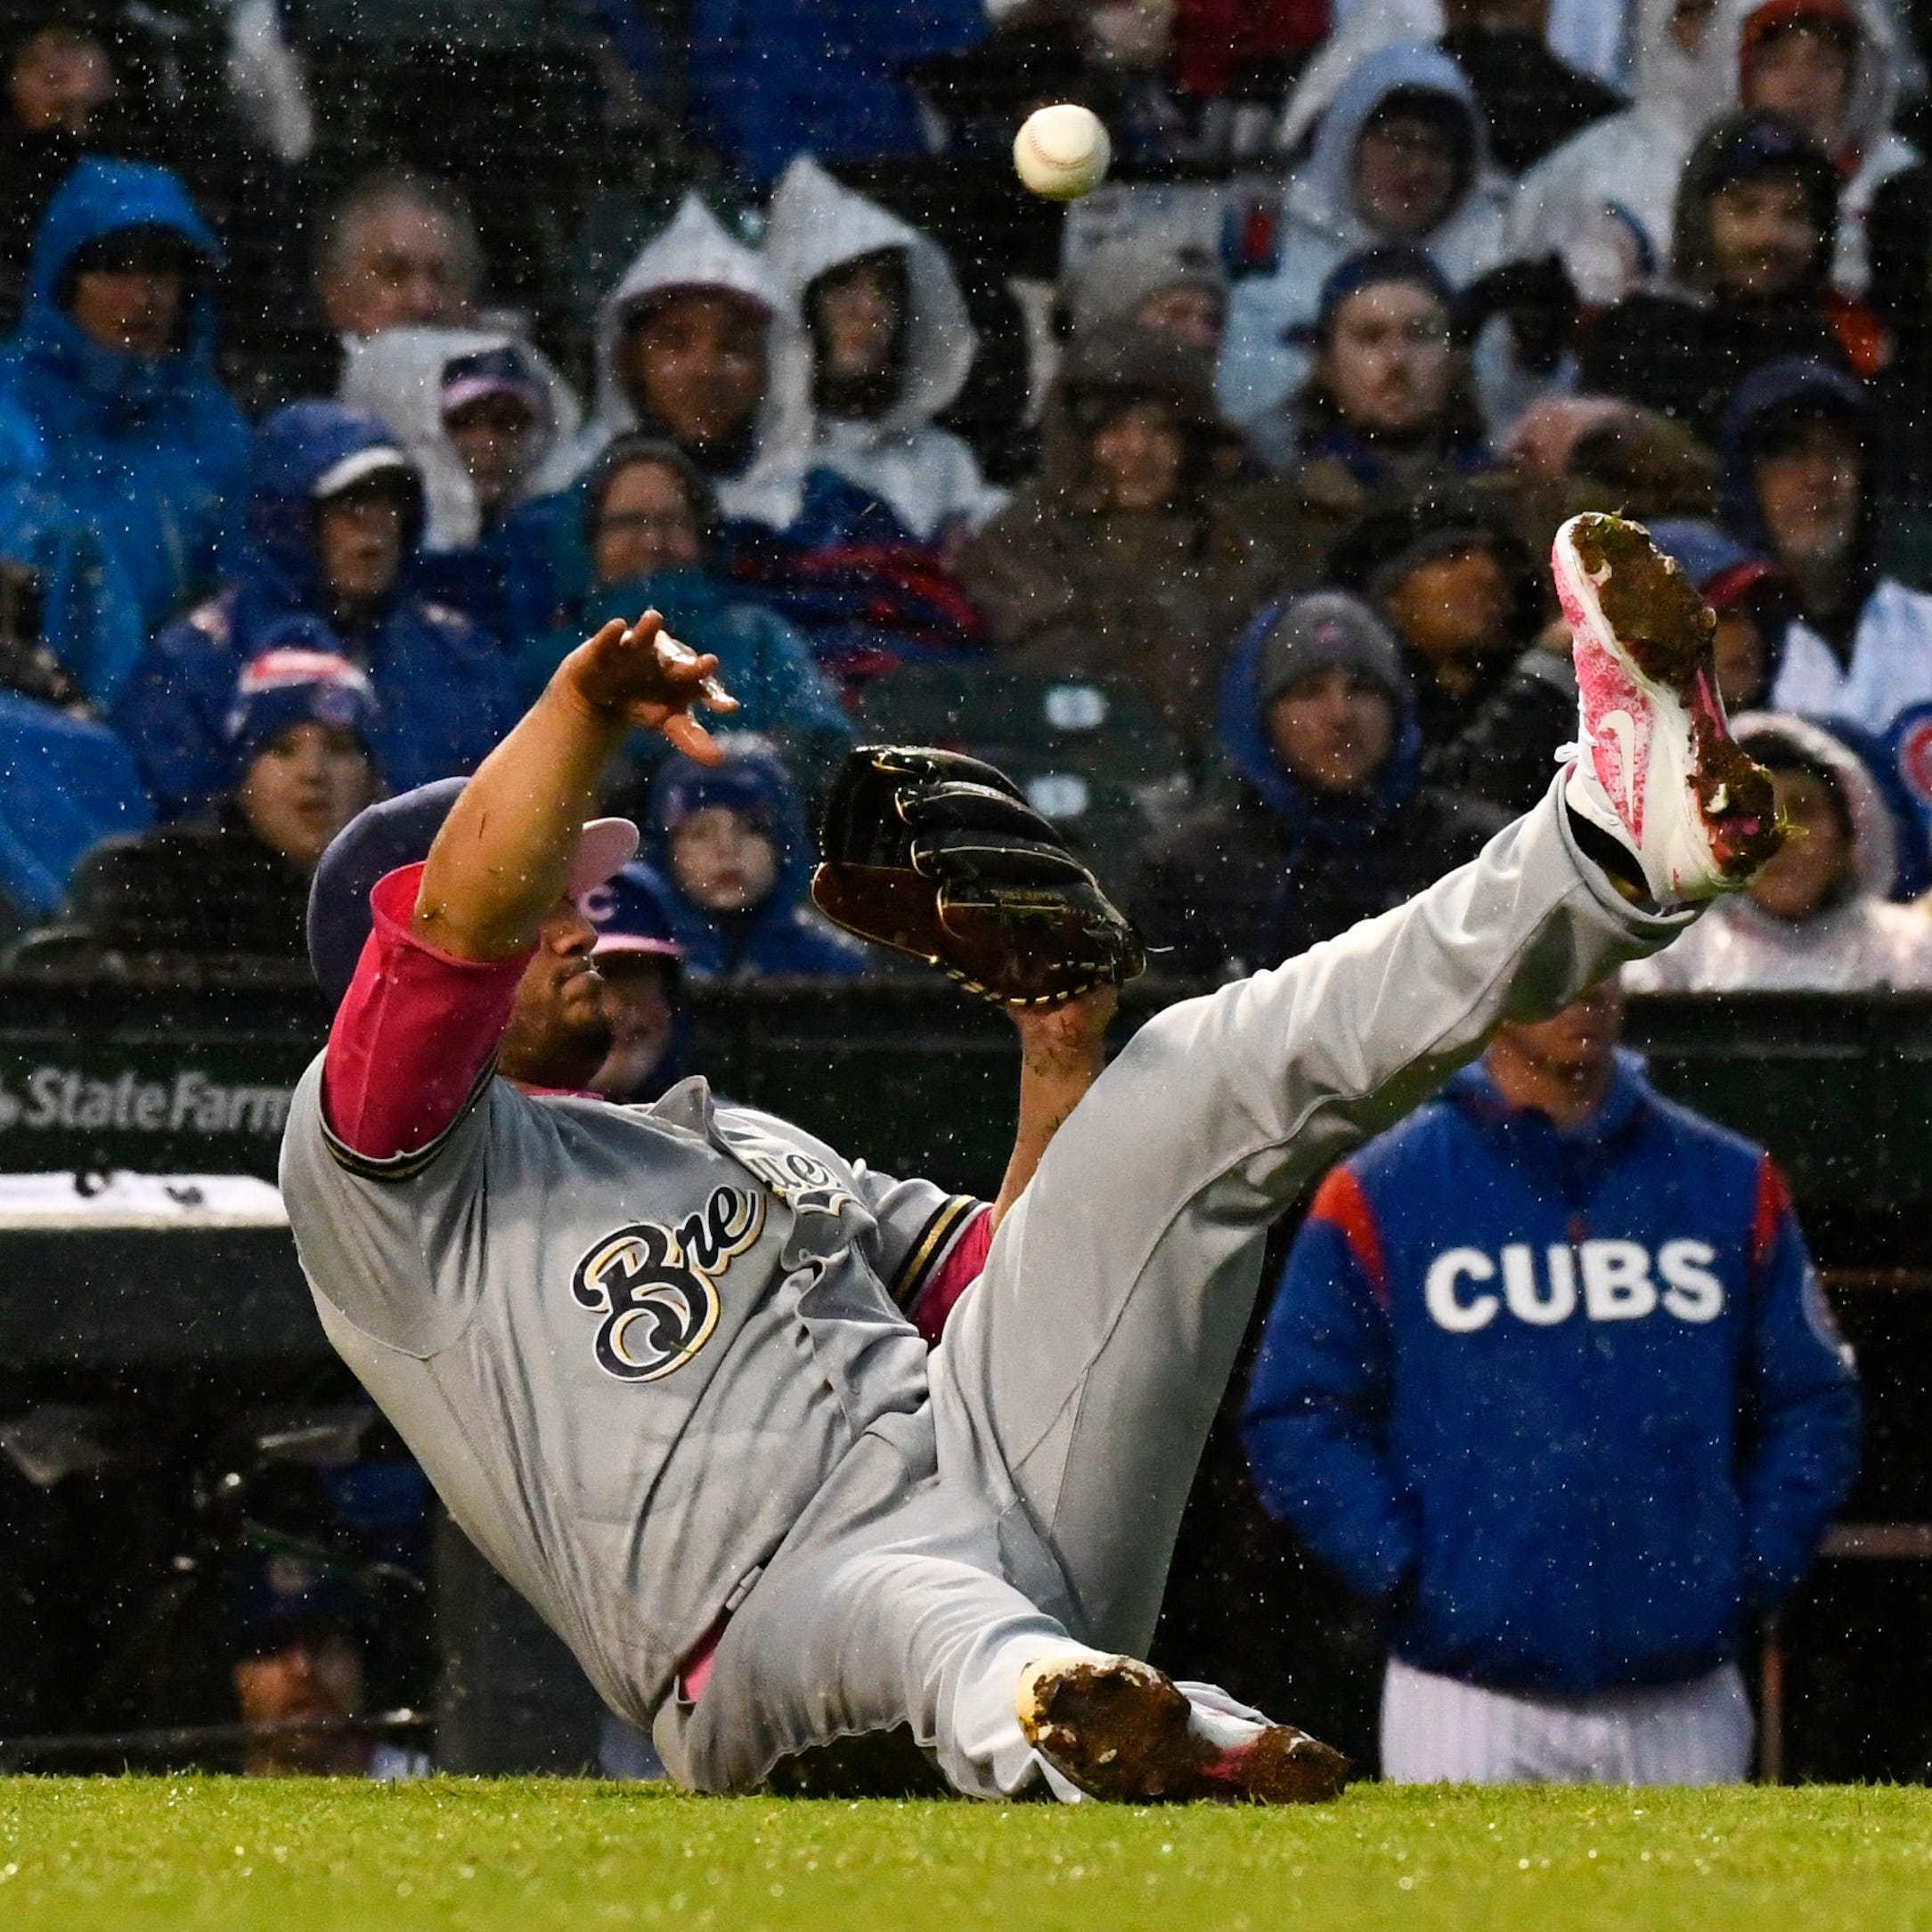 Cubs 4, Brewers 1: Appearance on Sunday night wasn't exactly must-see TV